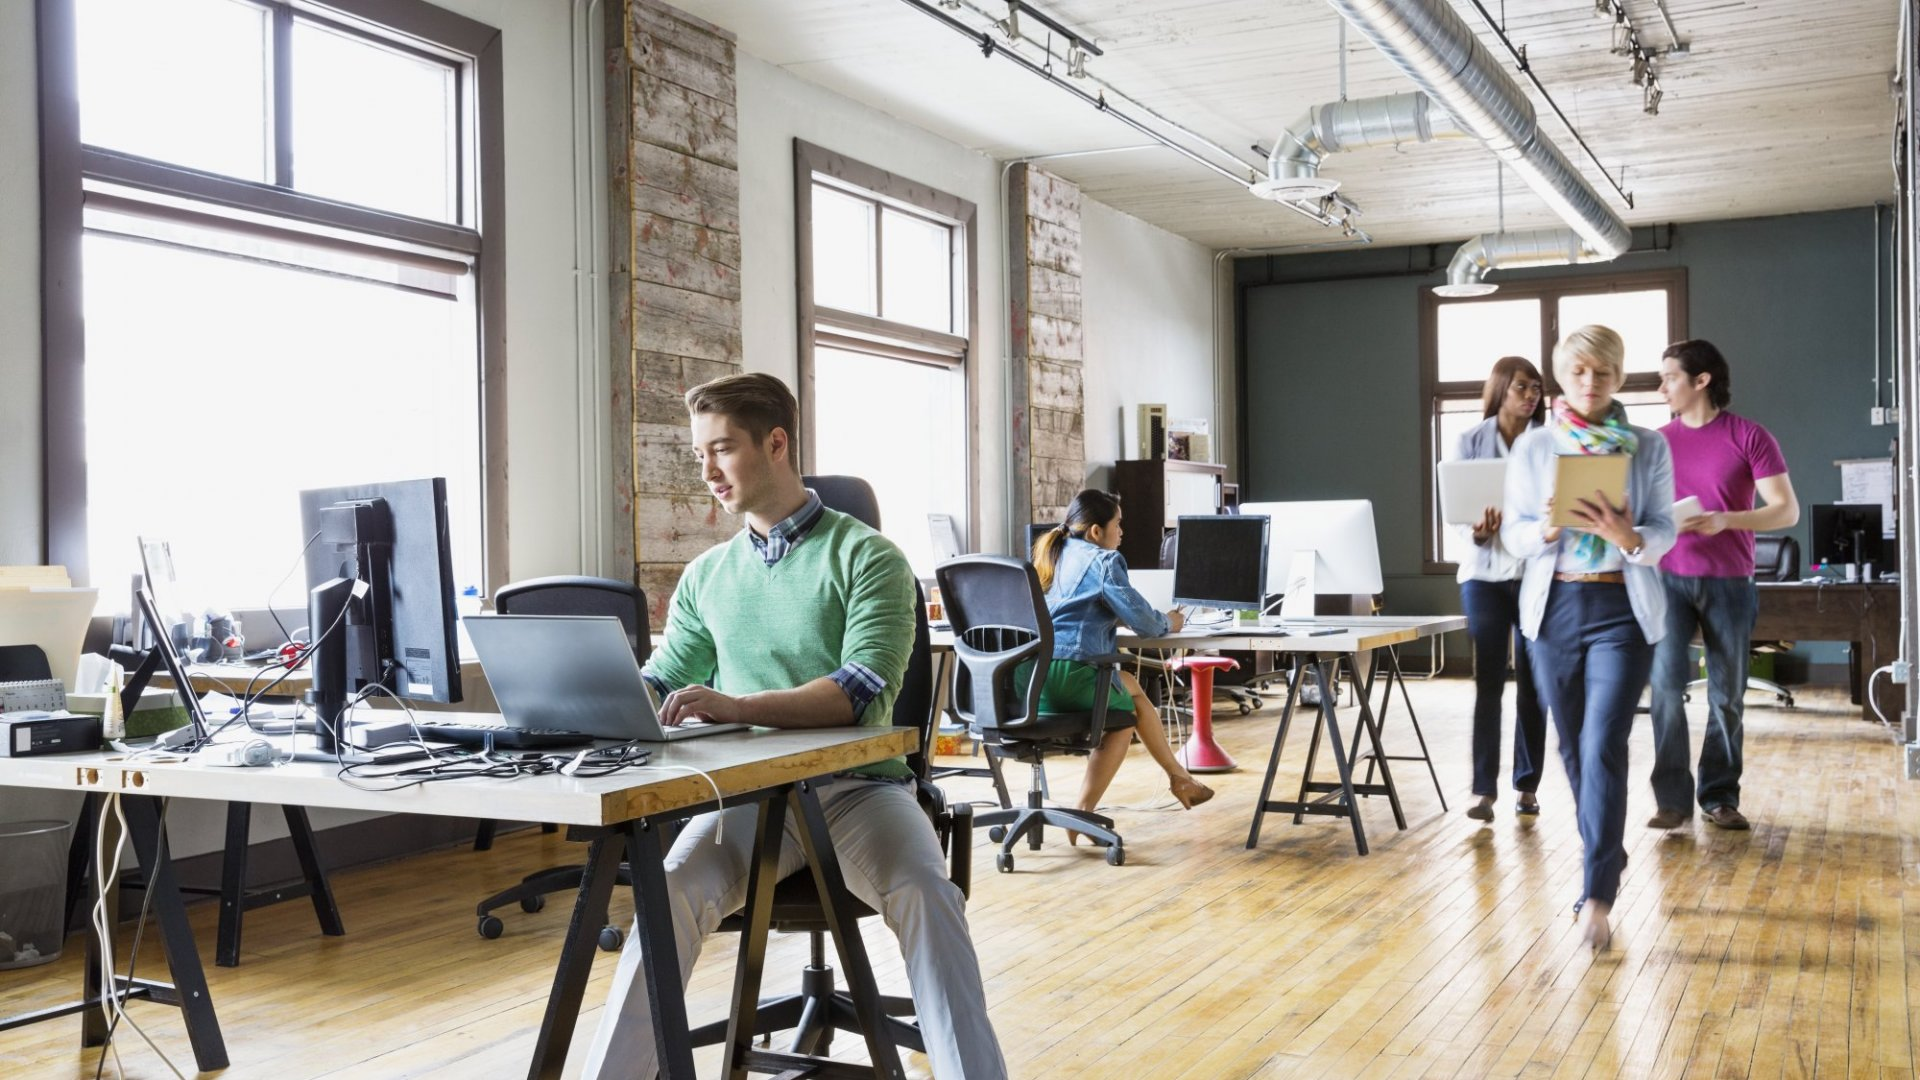 Why You Should Consider a Creative Office Space for Your Company